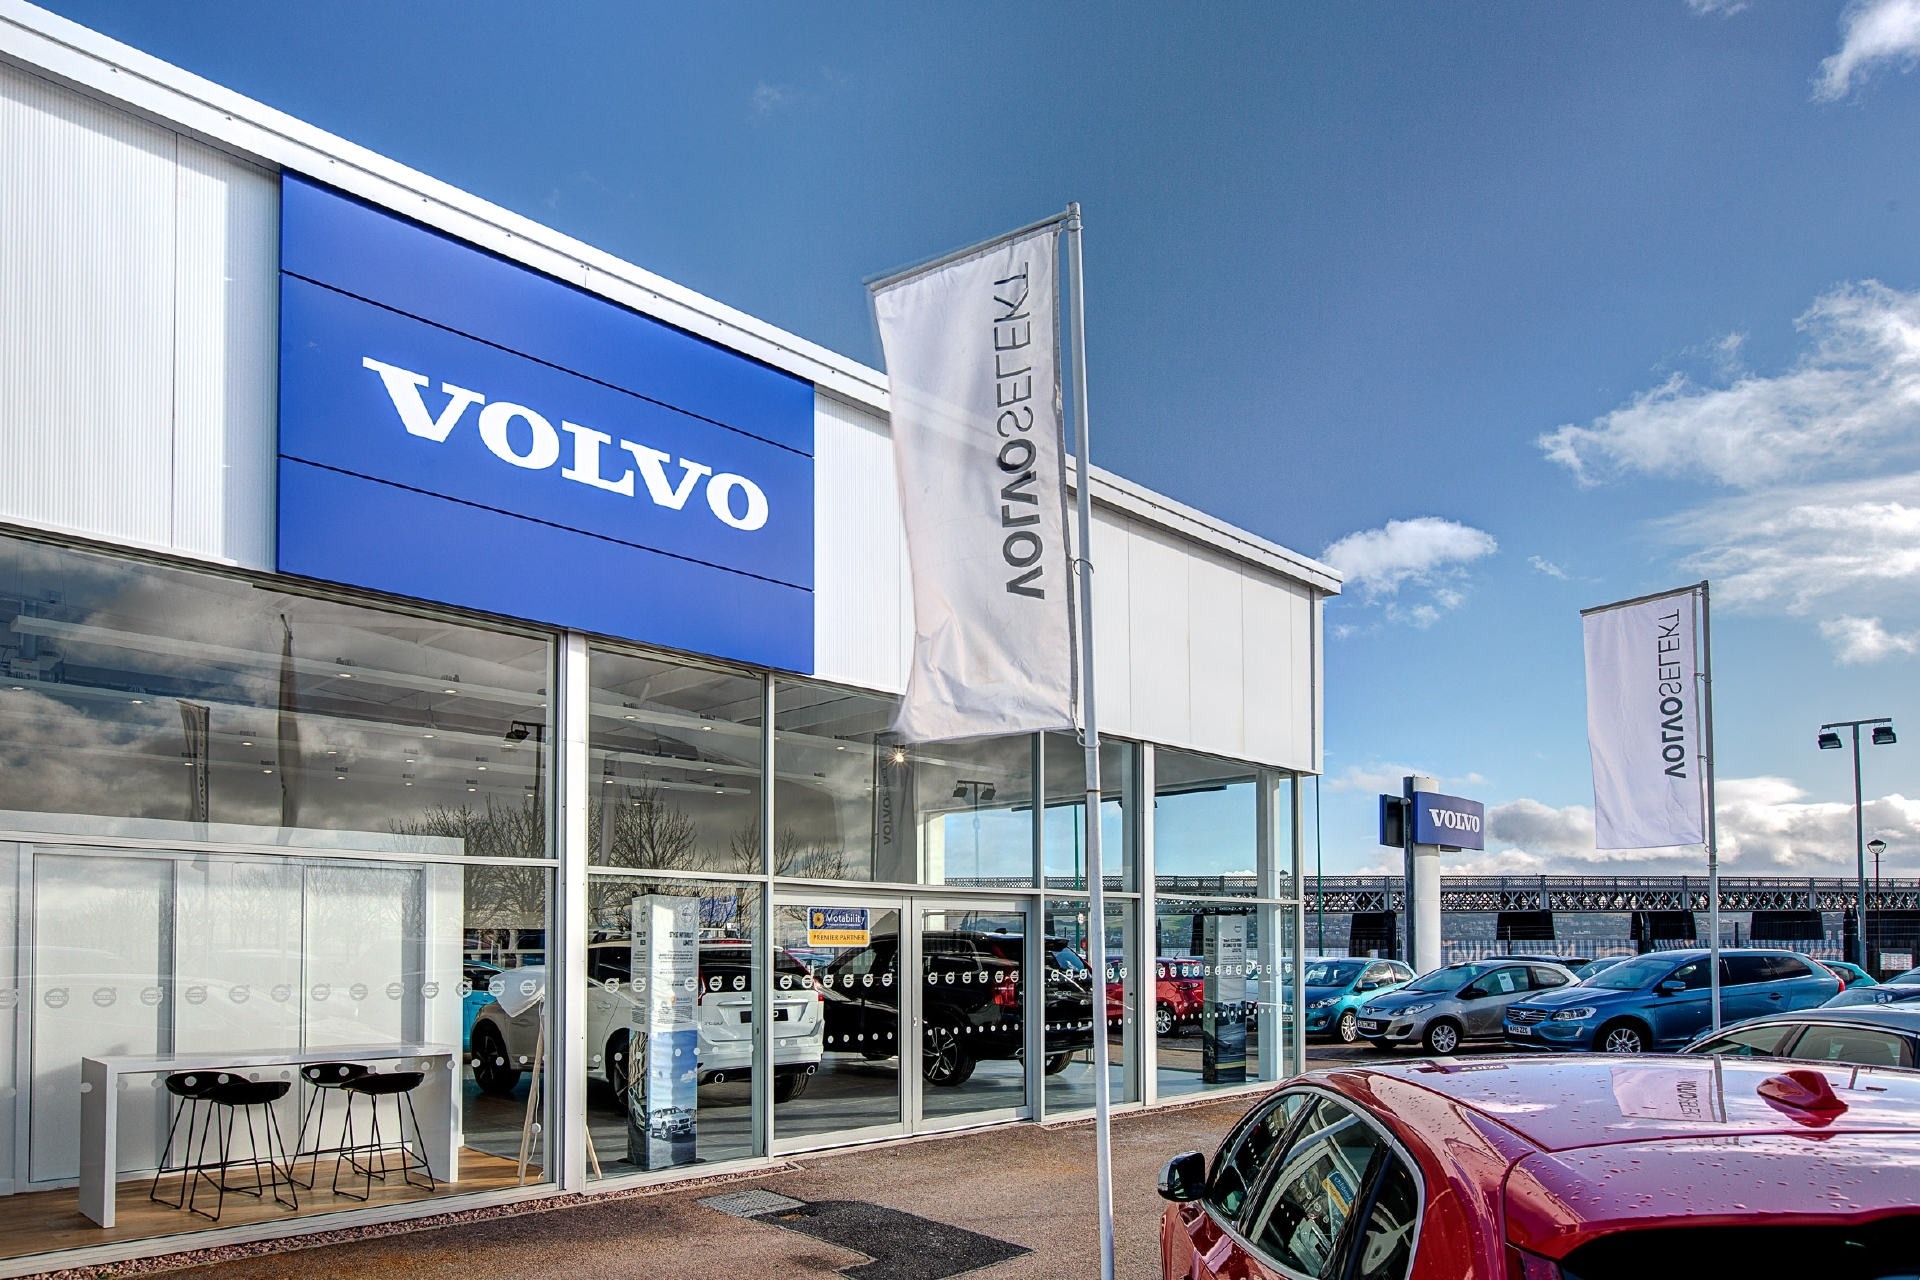 Barnetts new Volvo showroom at Riverside, Dundee was the first Volvo Retail Experience showroom in Scotland.